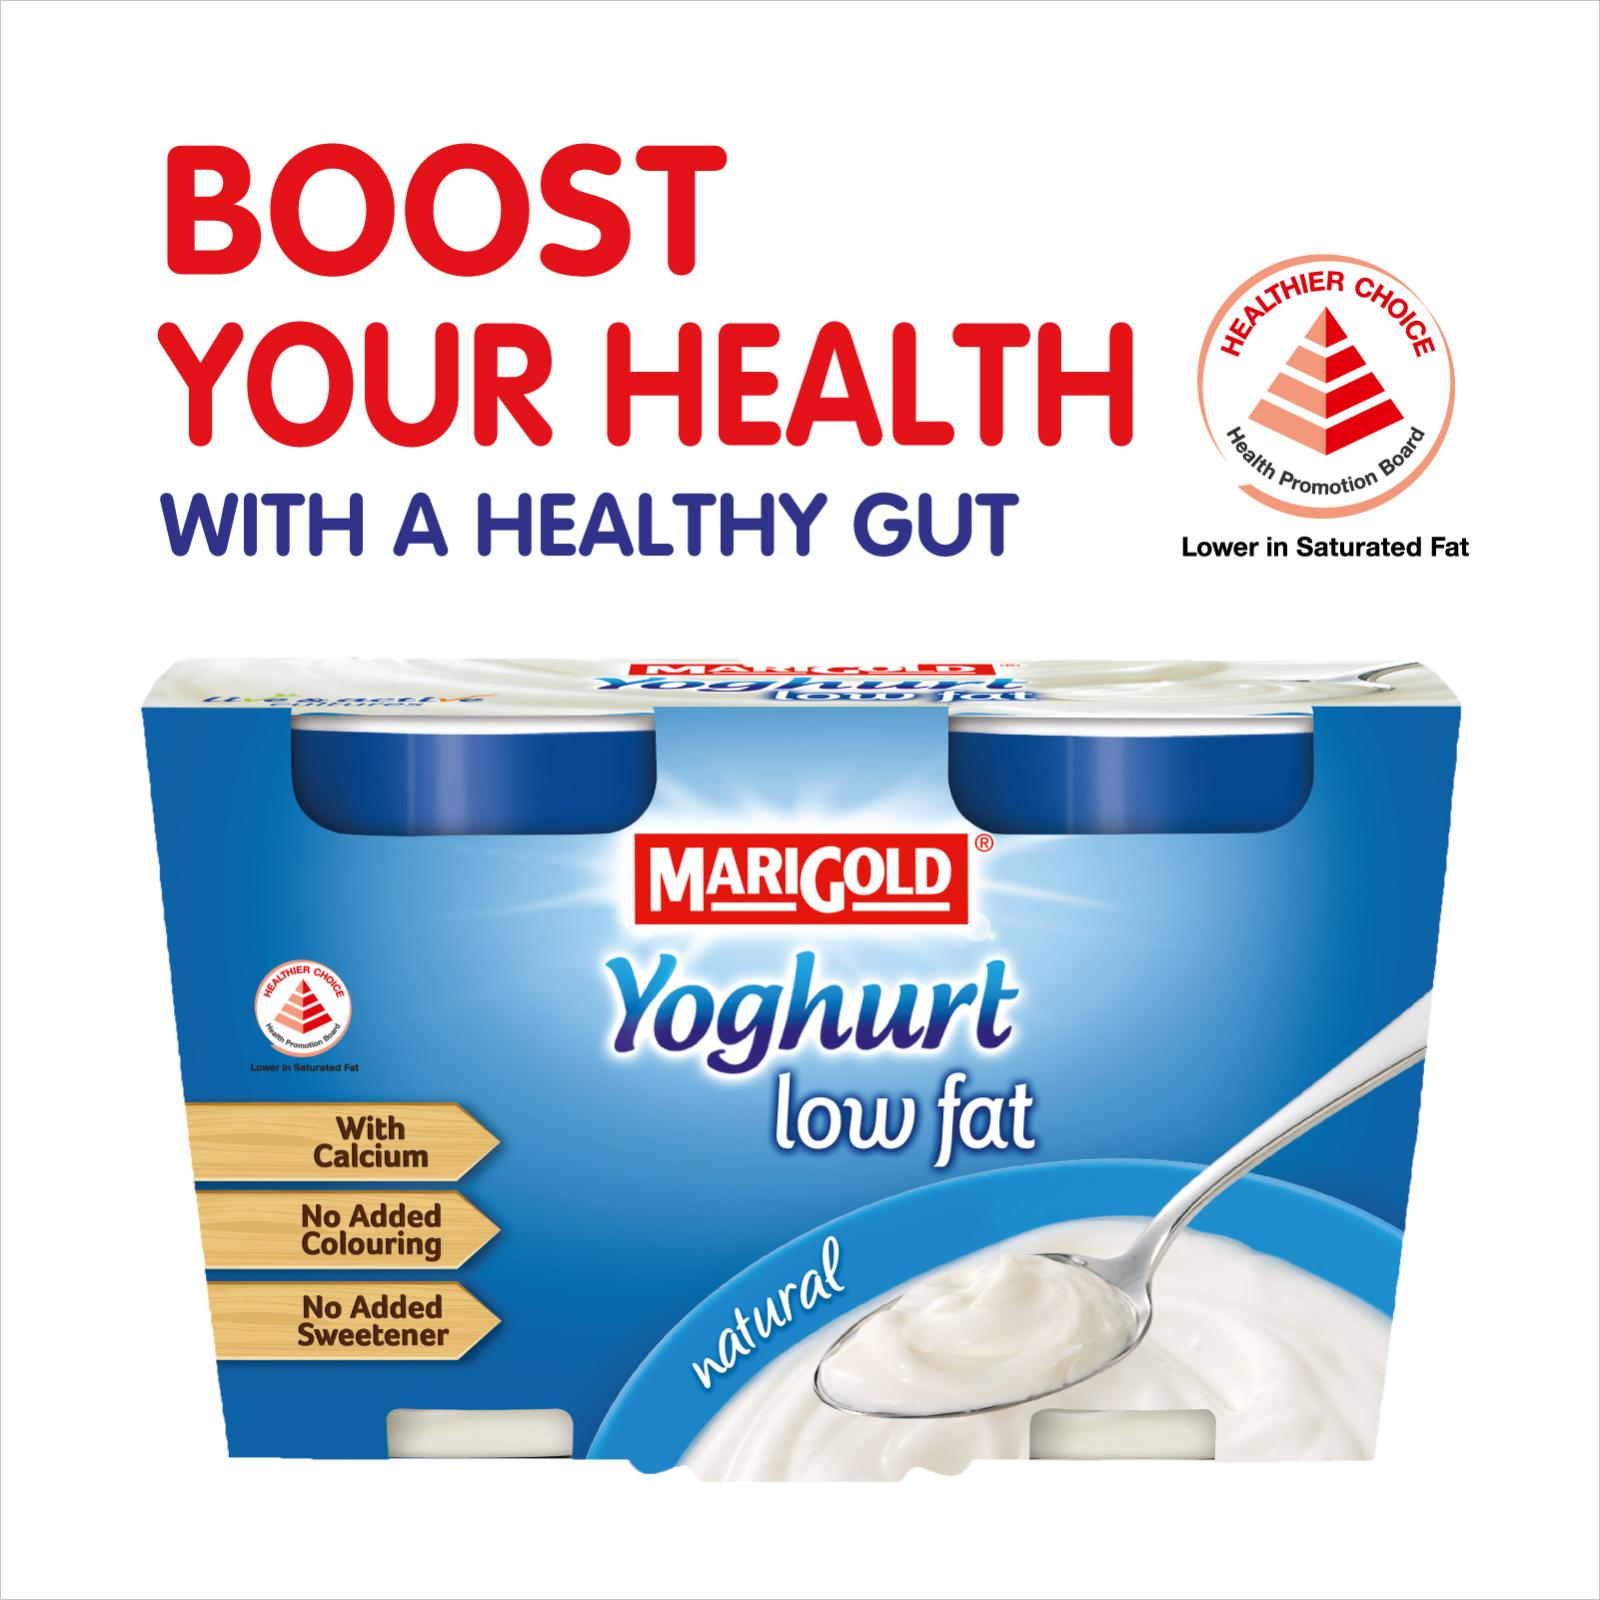 MARIGOLD Low Fat Cup Yoghurt - Natural 2x130G